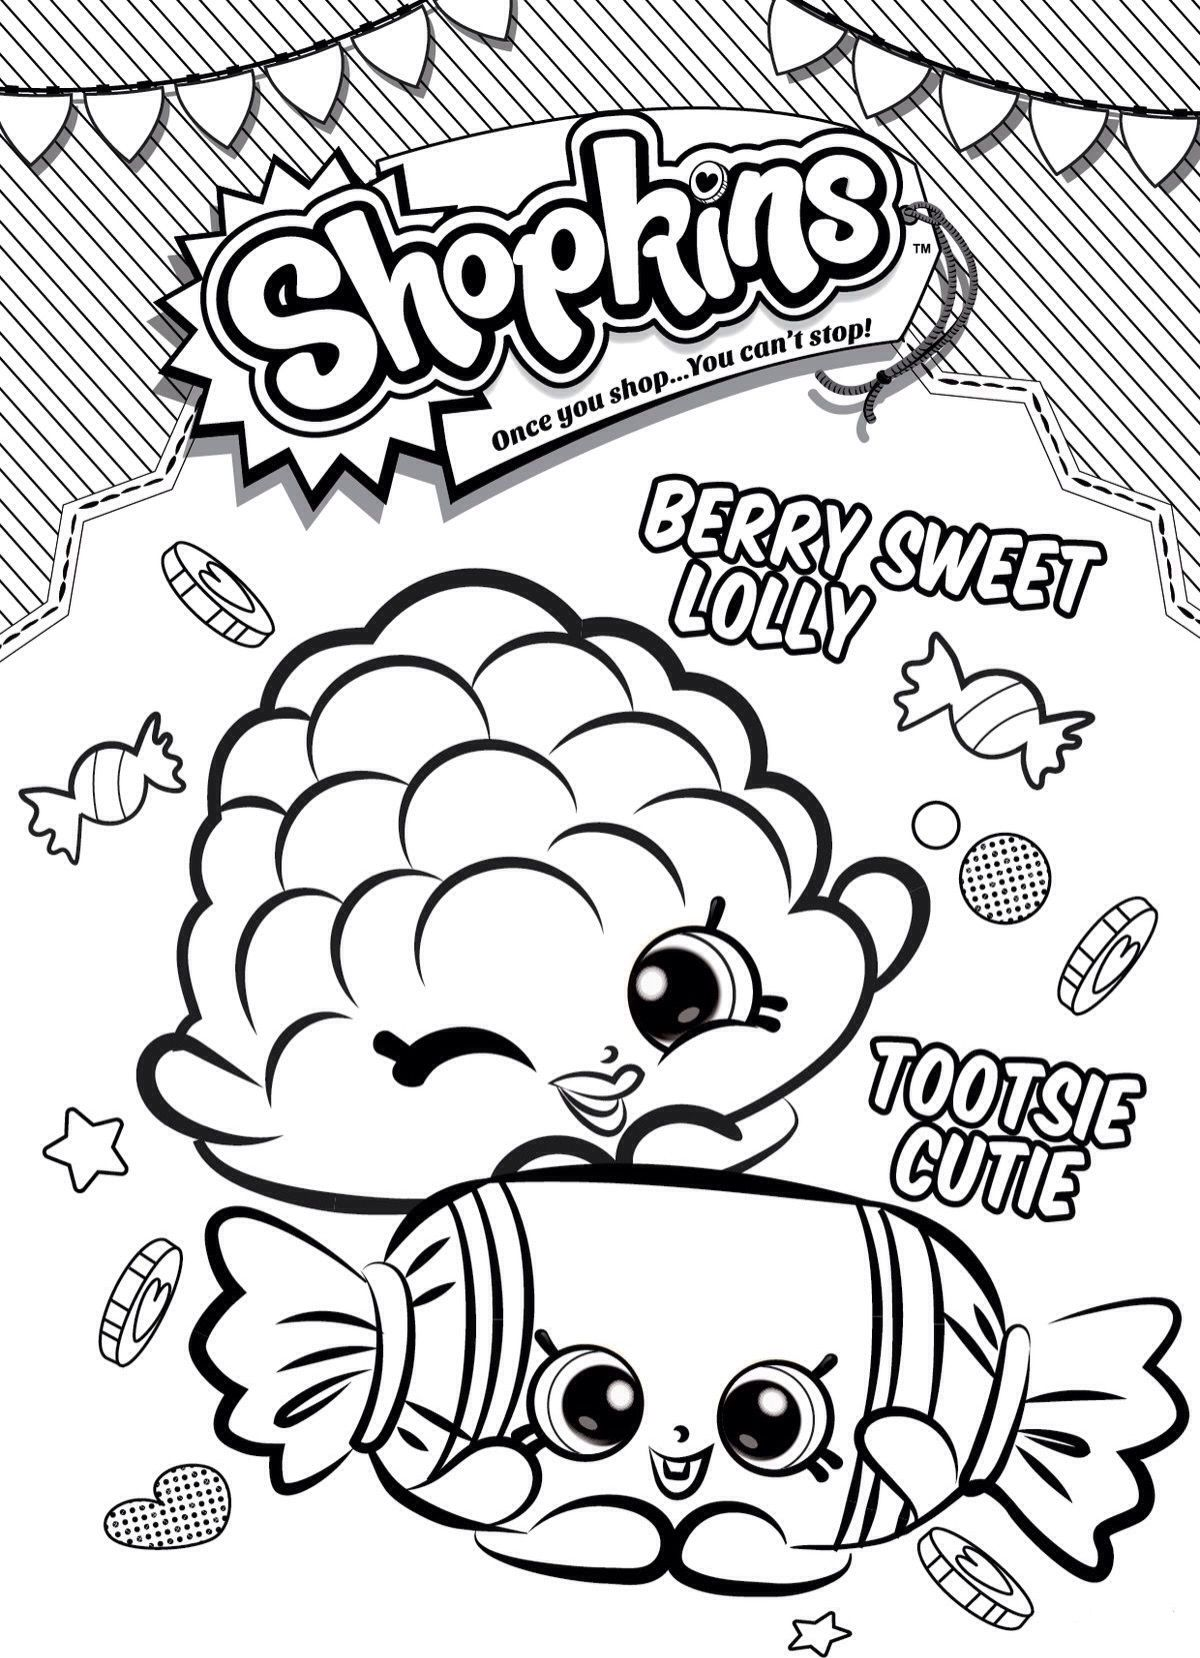 8th birthday 6th birthday parties birthday ideas shopkins coloring pages free printable